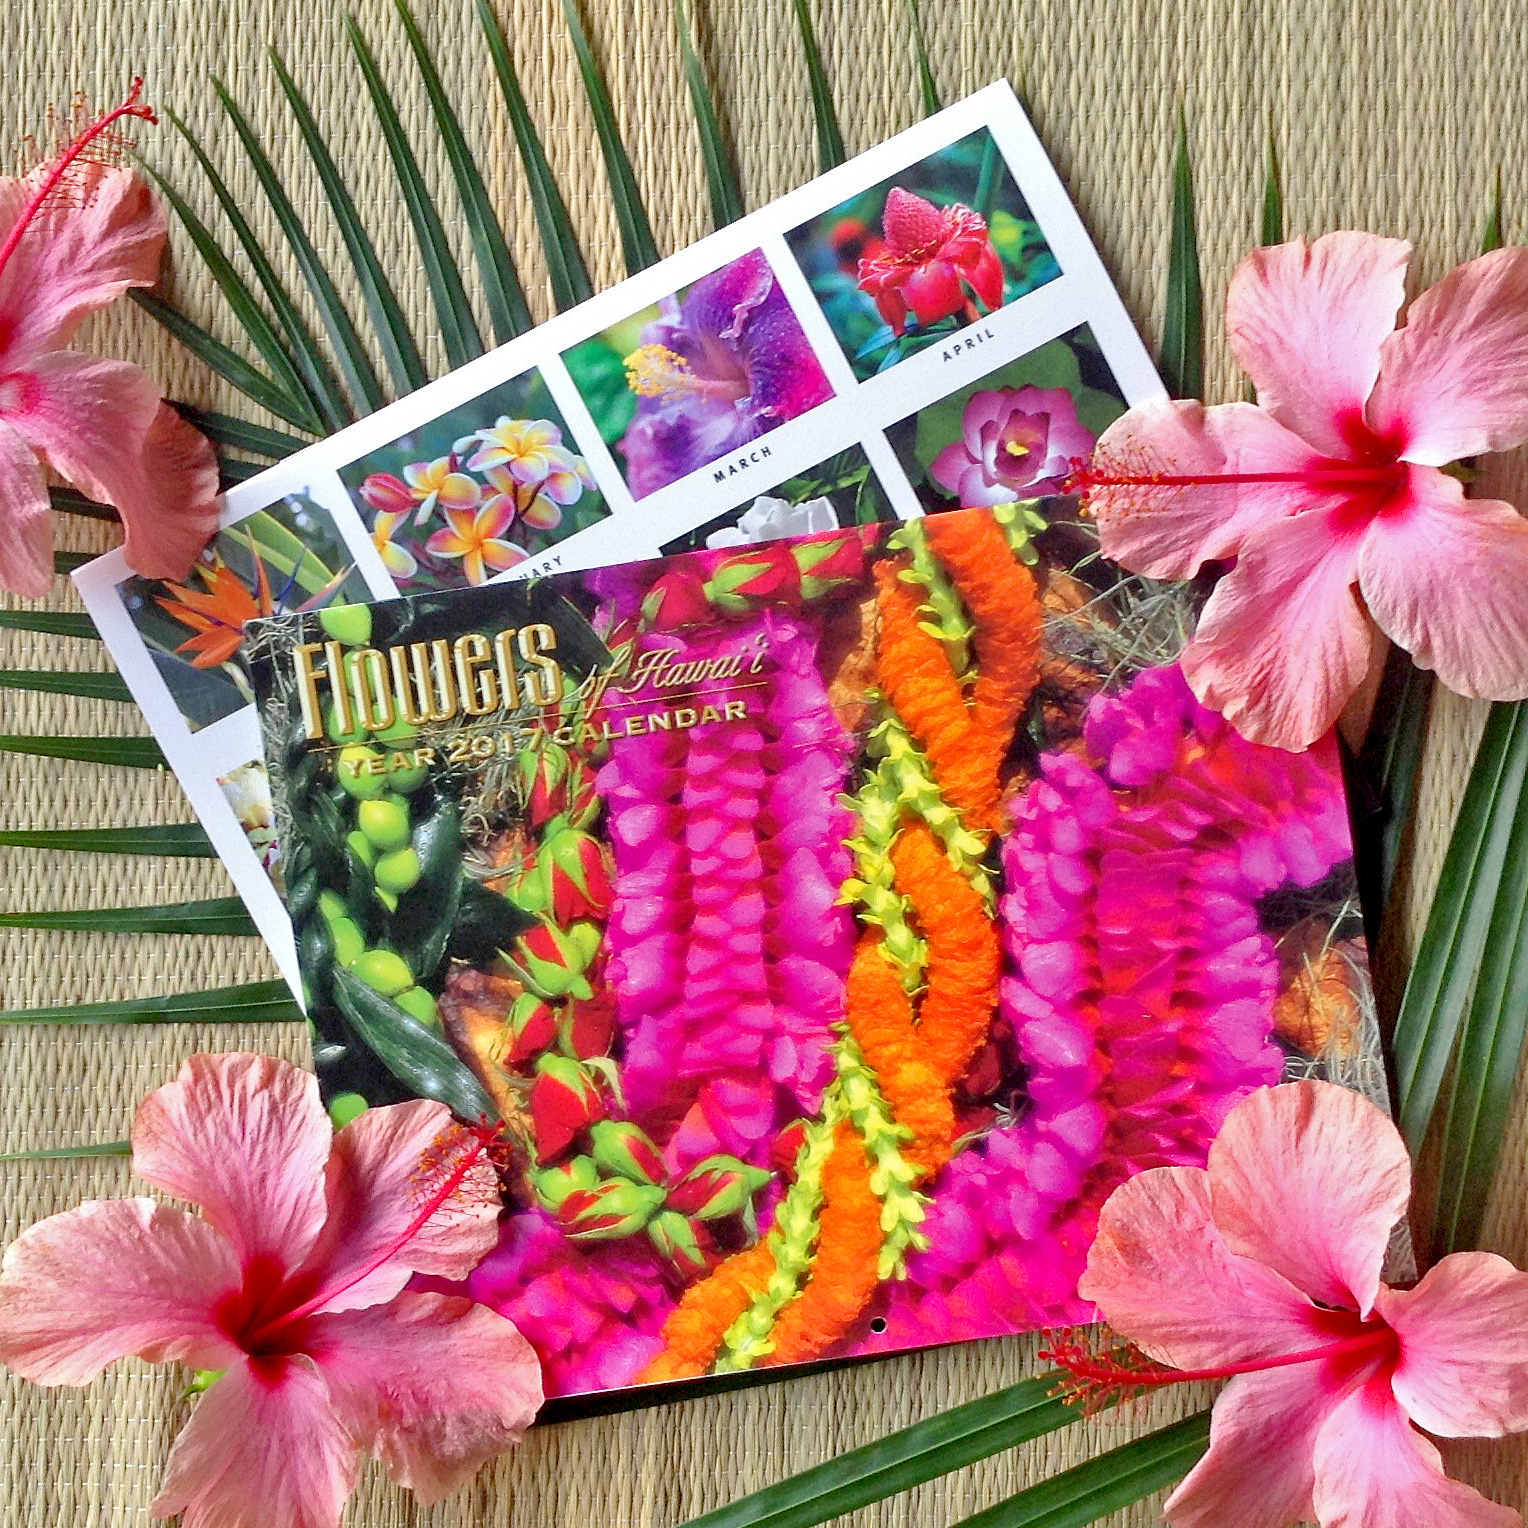 2019 Flowers Of Hawaii Calendar A Great Add On For Hawaii Lovers